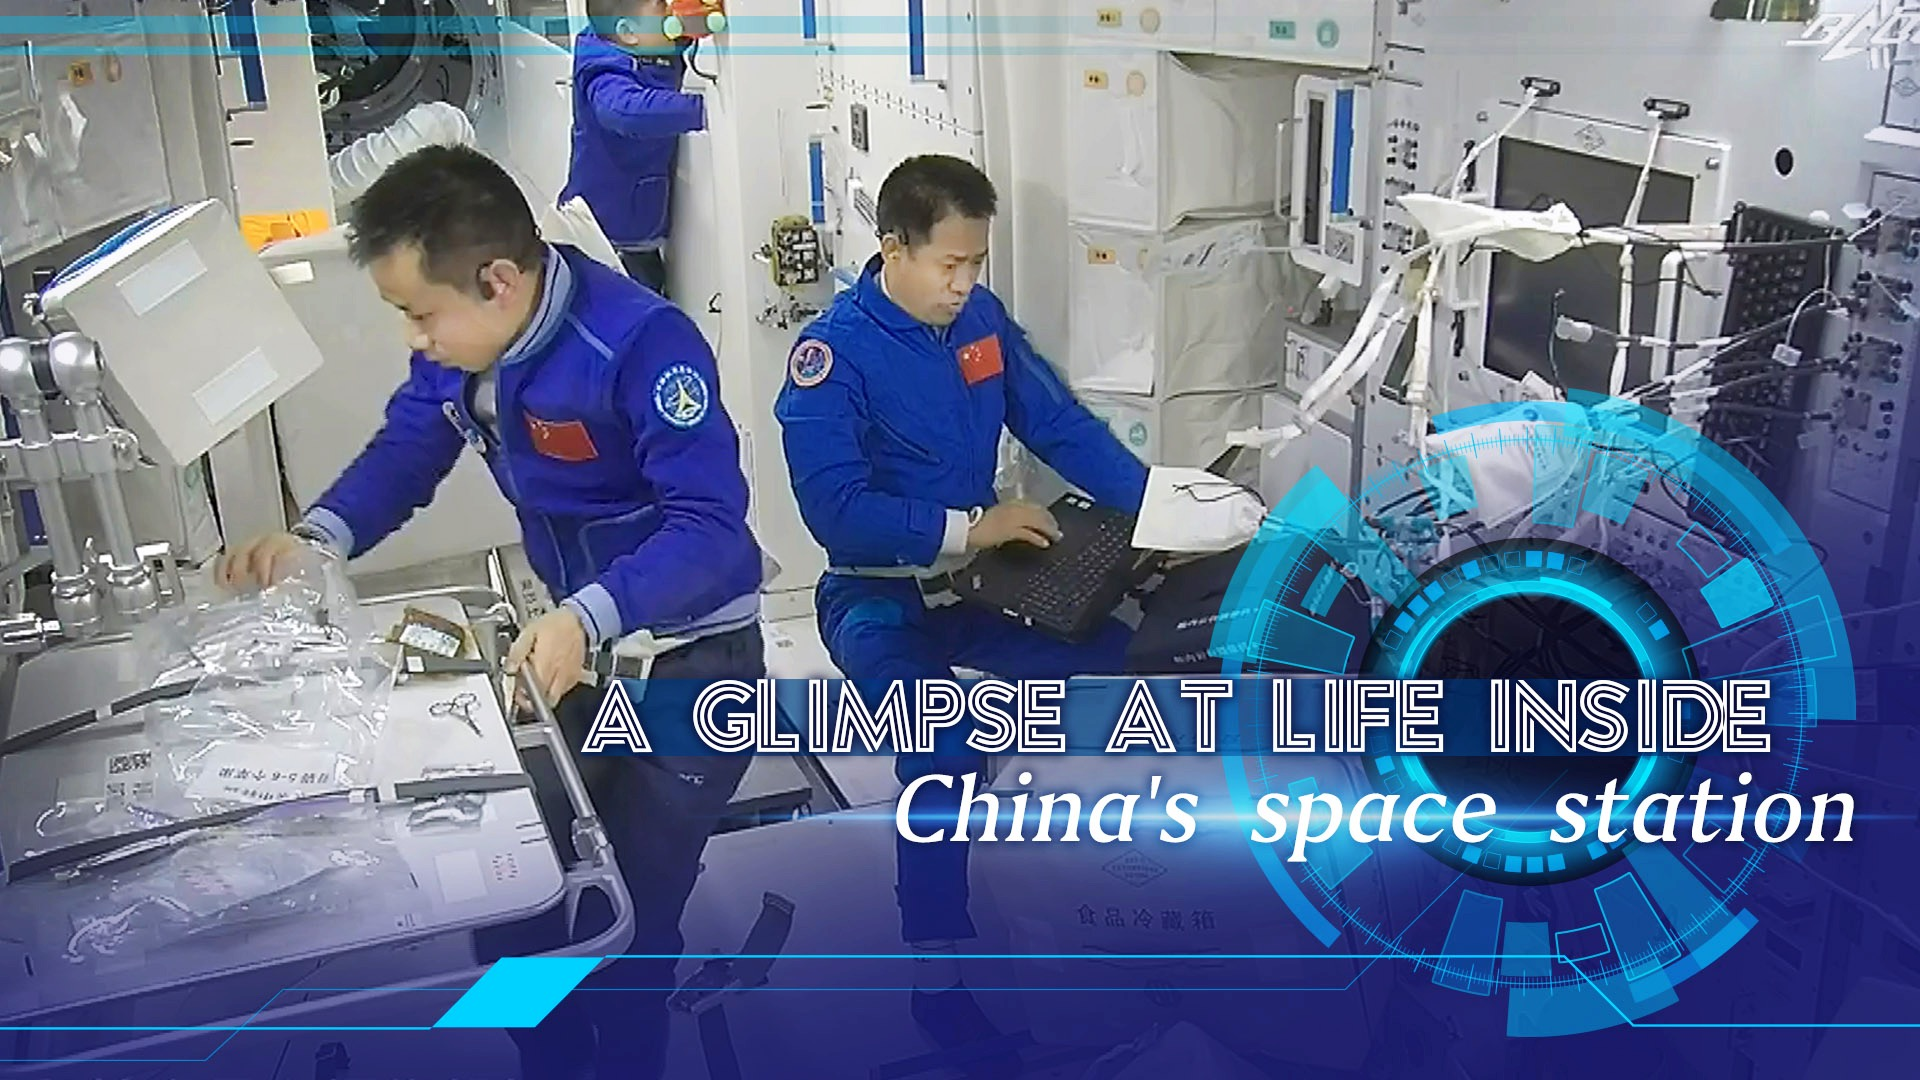 - 1e890a6bc9ec439c8f118eaec4b74279 - Tech Breakdown: A glimpse at life inside China's space station